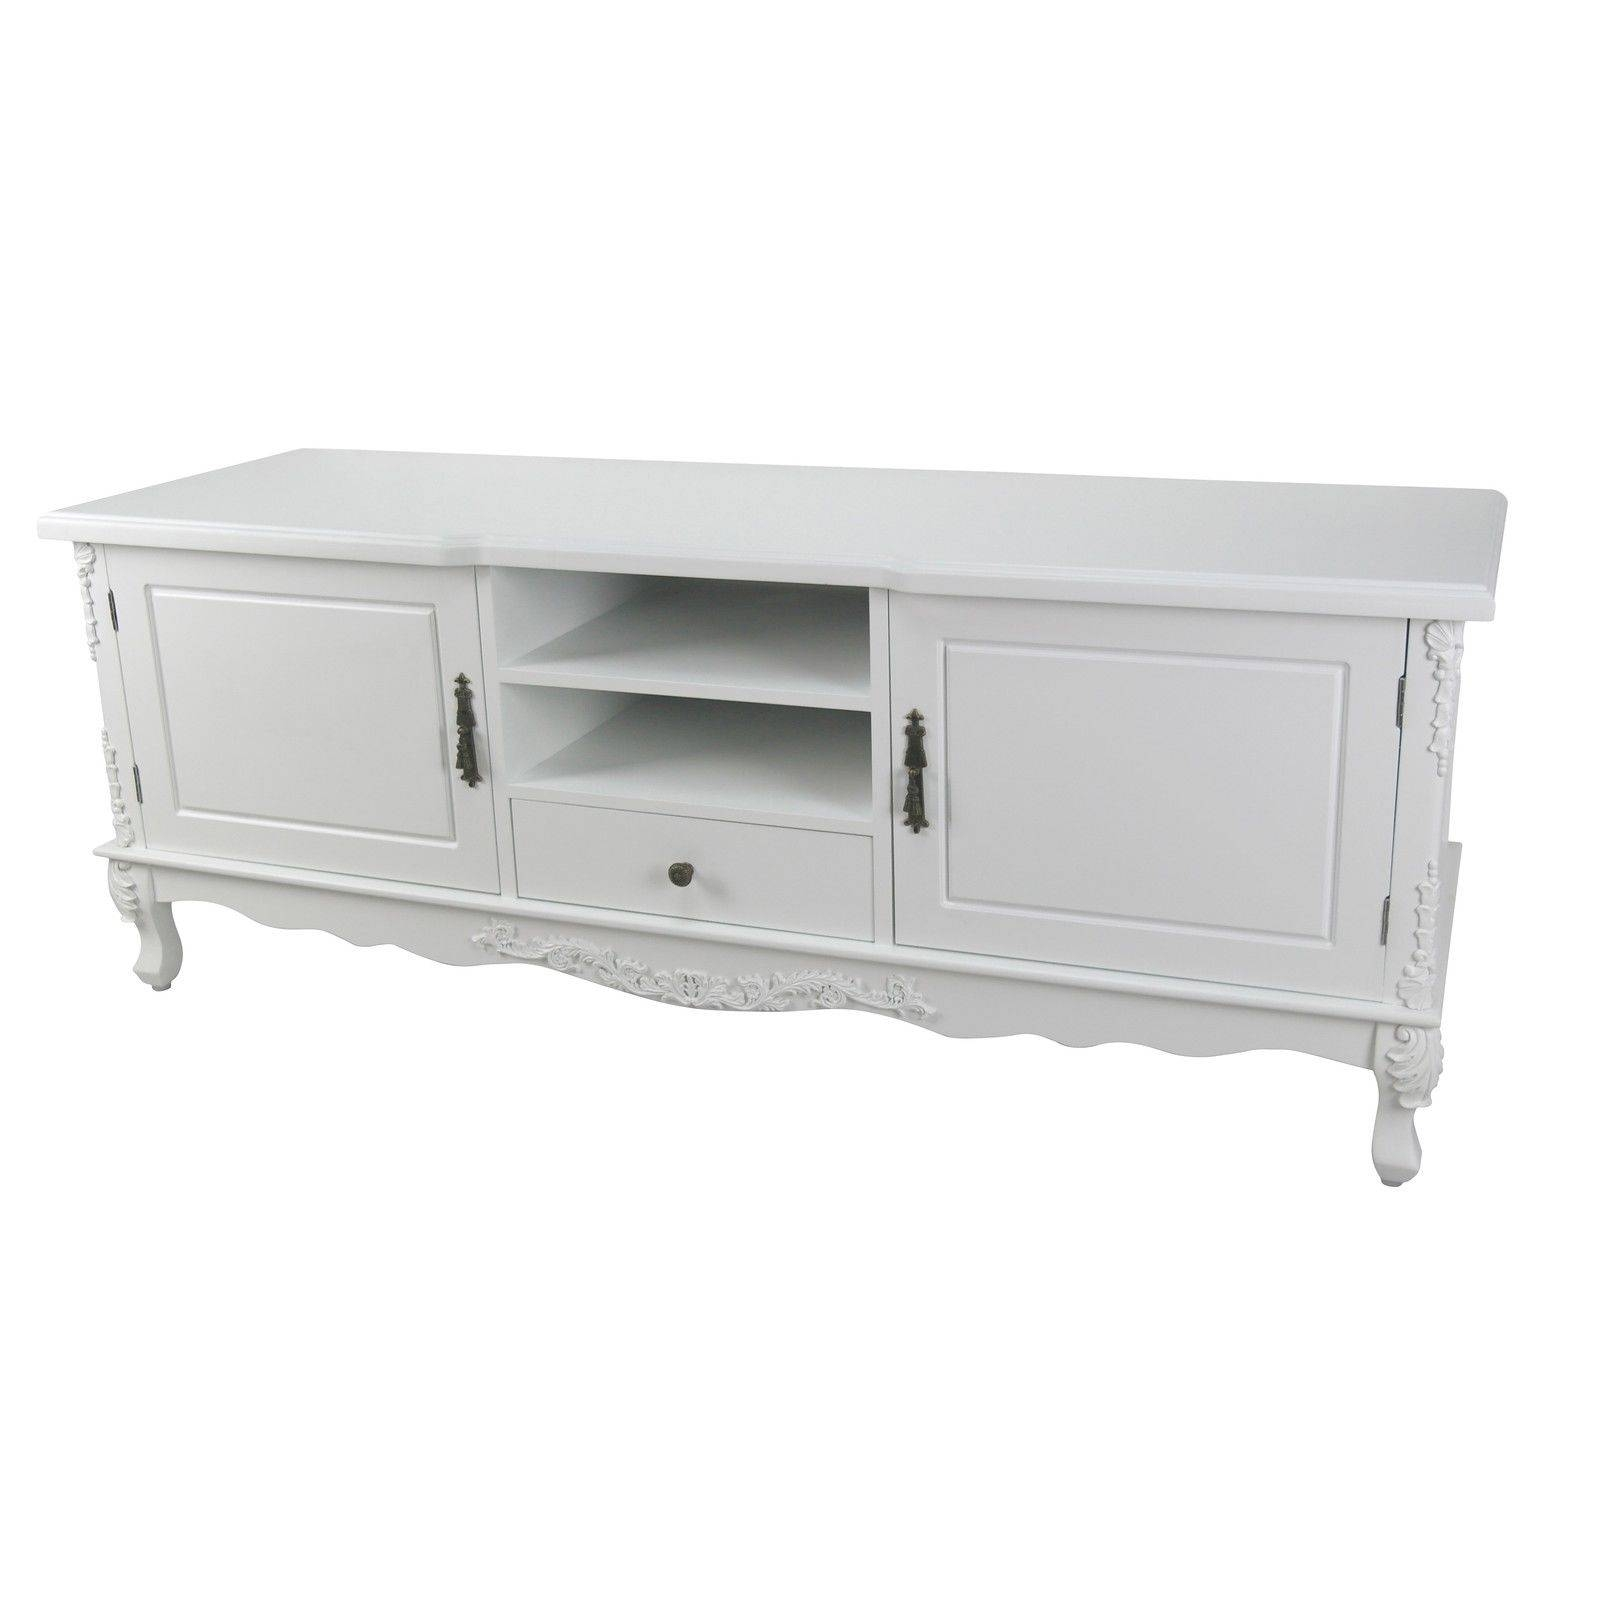 French Style White Large Cabinet Tv Unit Furniture - La Maison pertaining to French Tv Cabinets (Image 9 of 15)